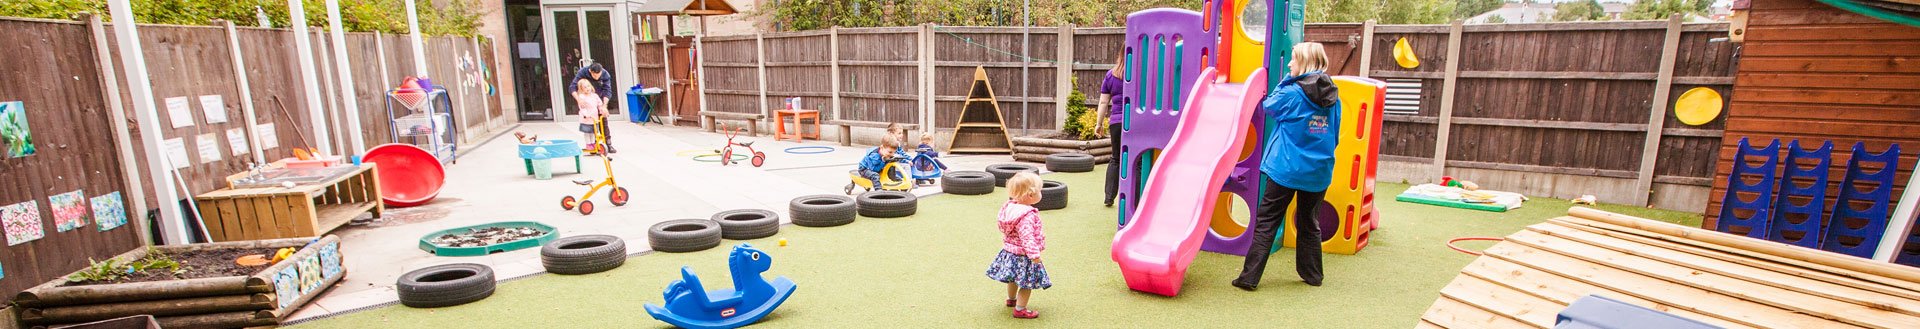 Sandbrook Park Day Nursery